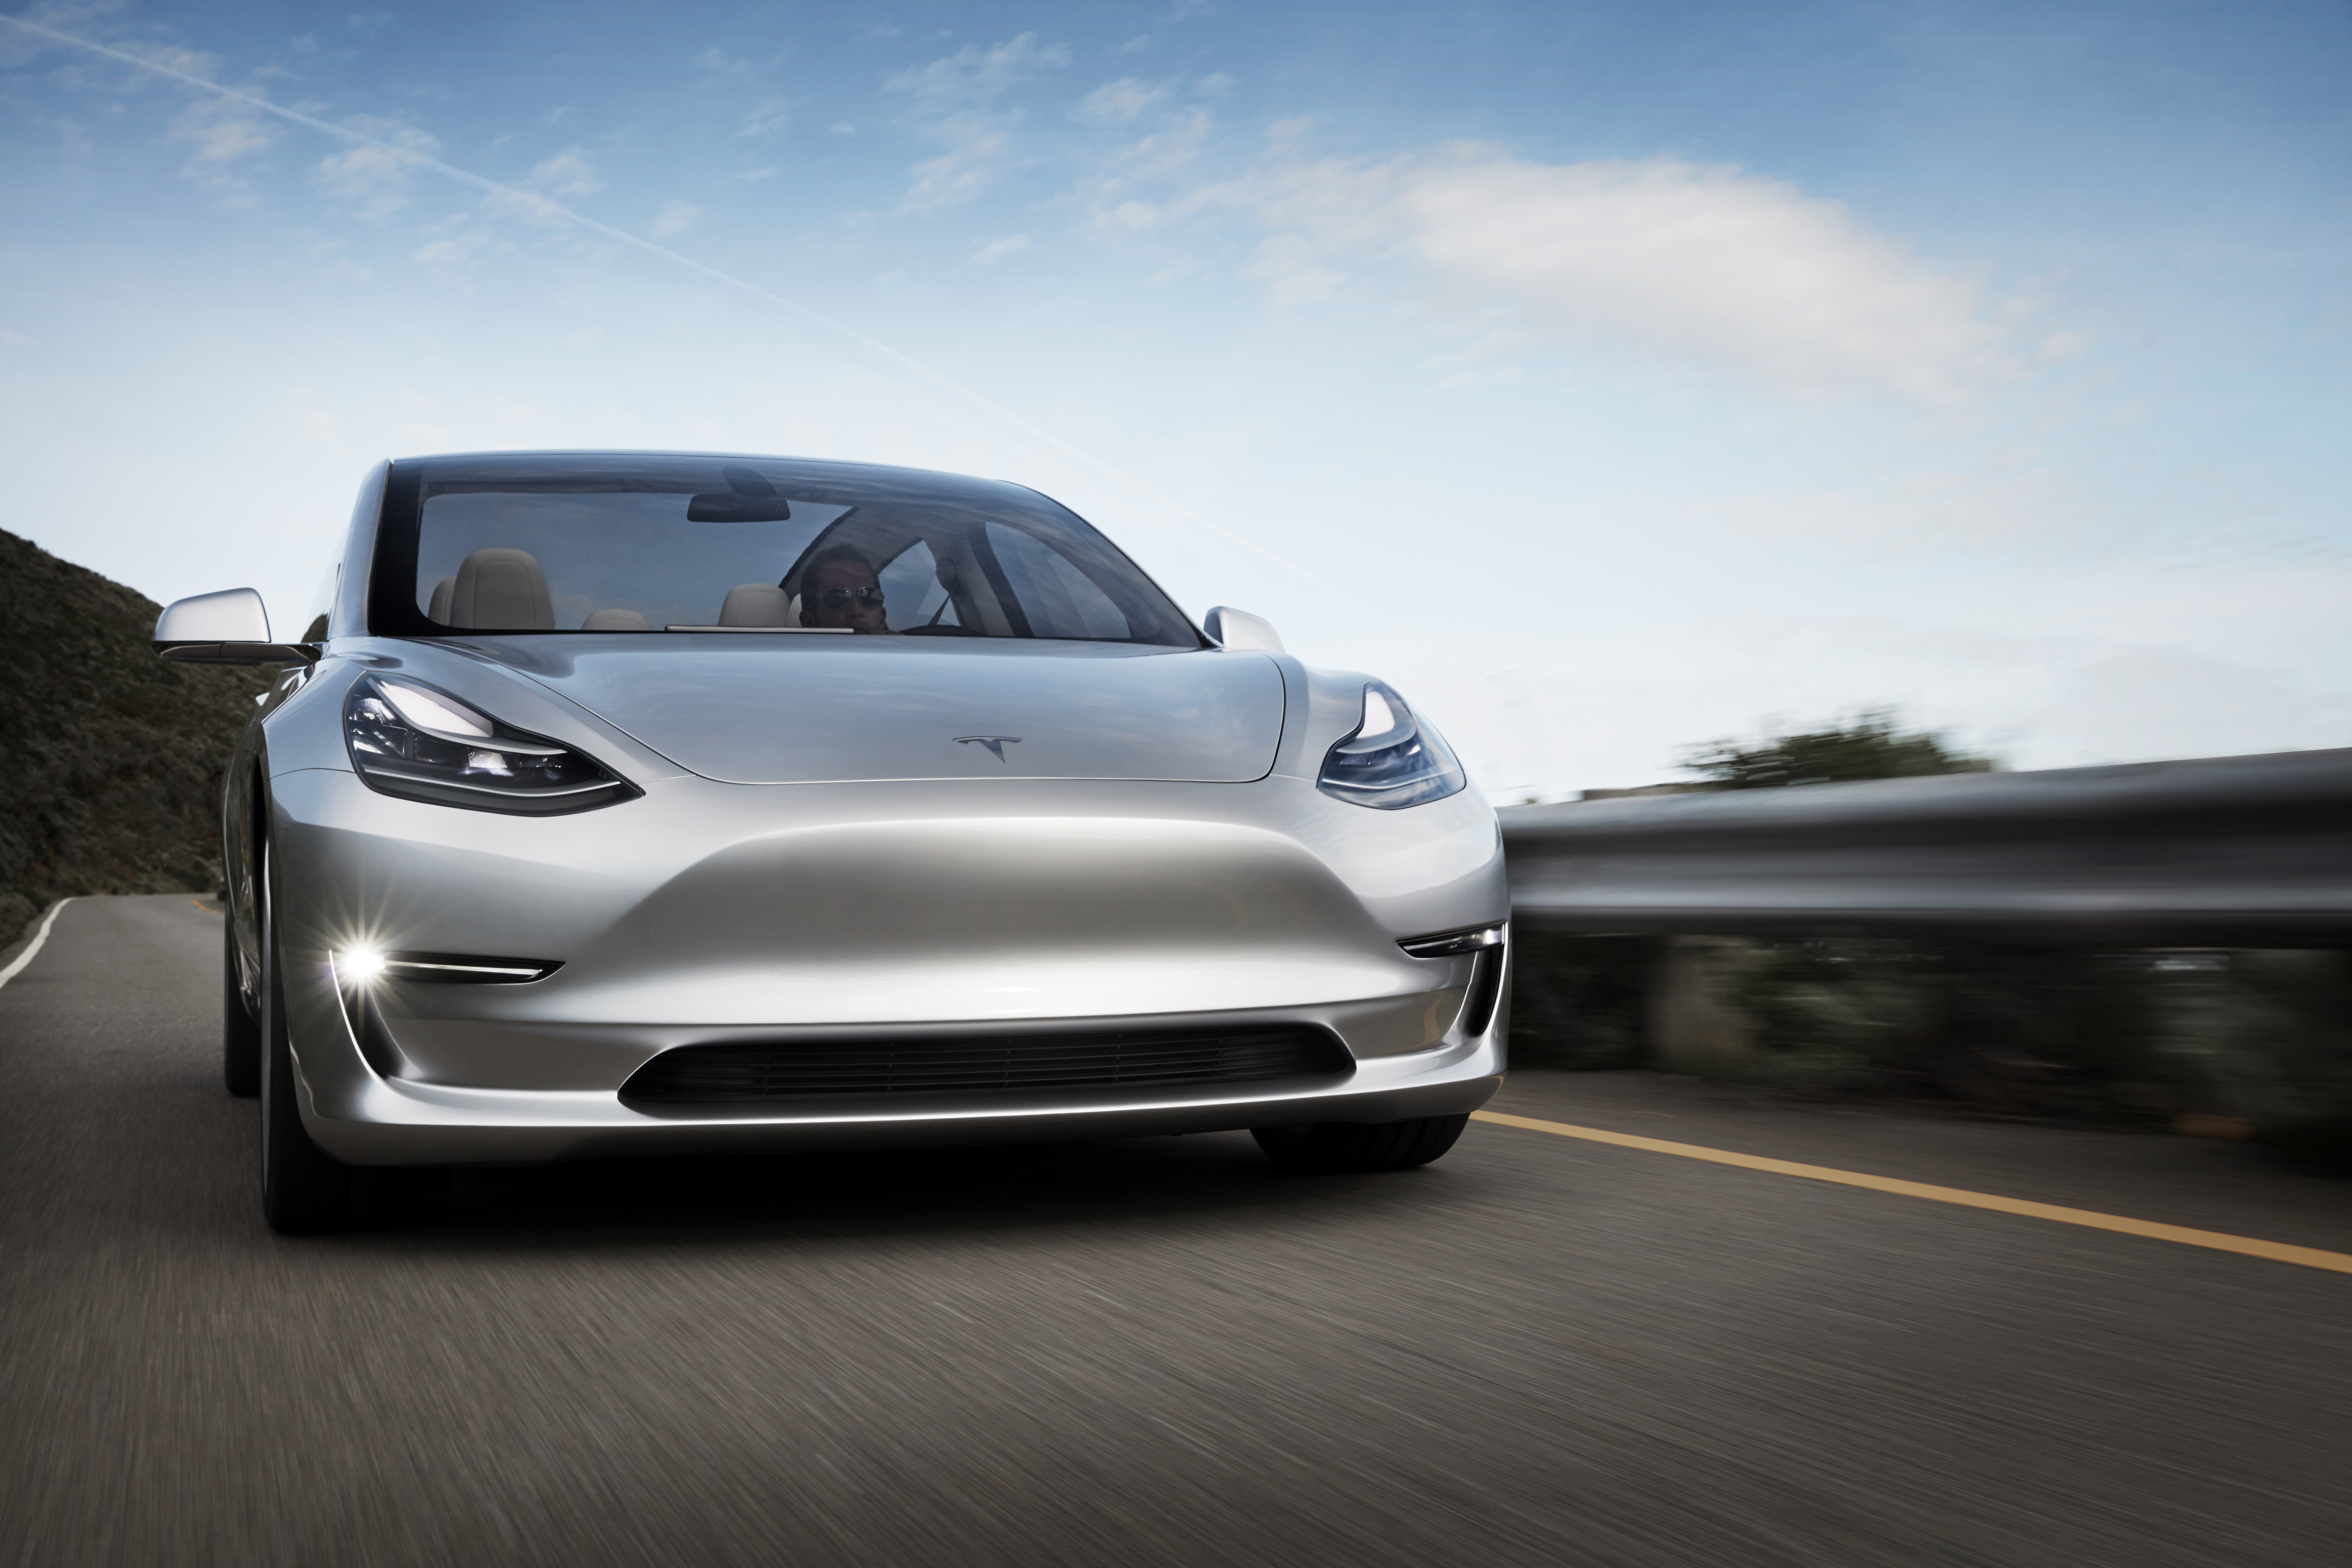 New Tesla Model 3 Promo High Res Shots Of The Silver